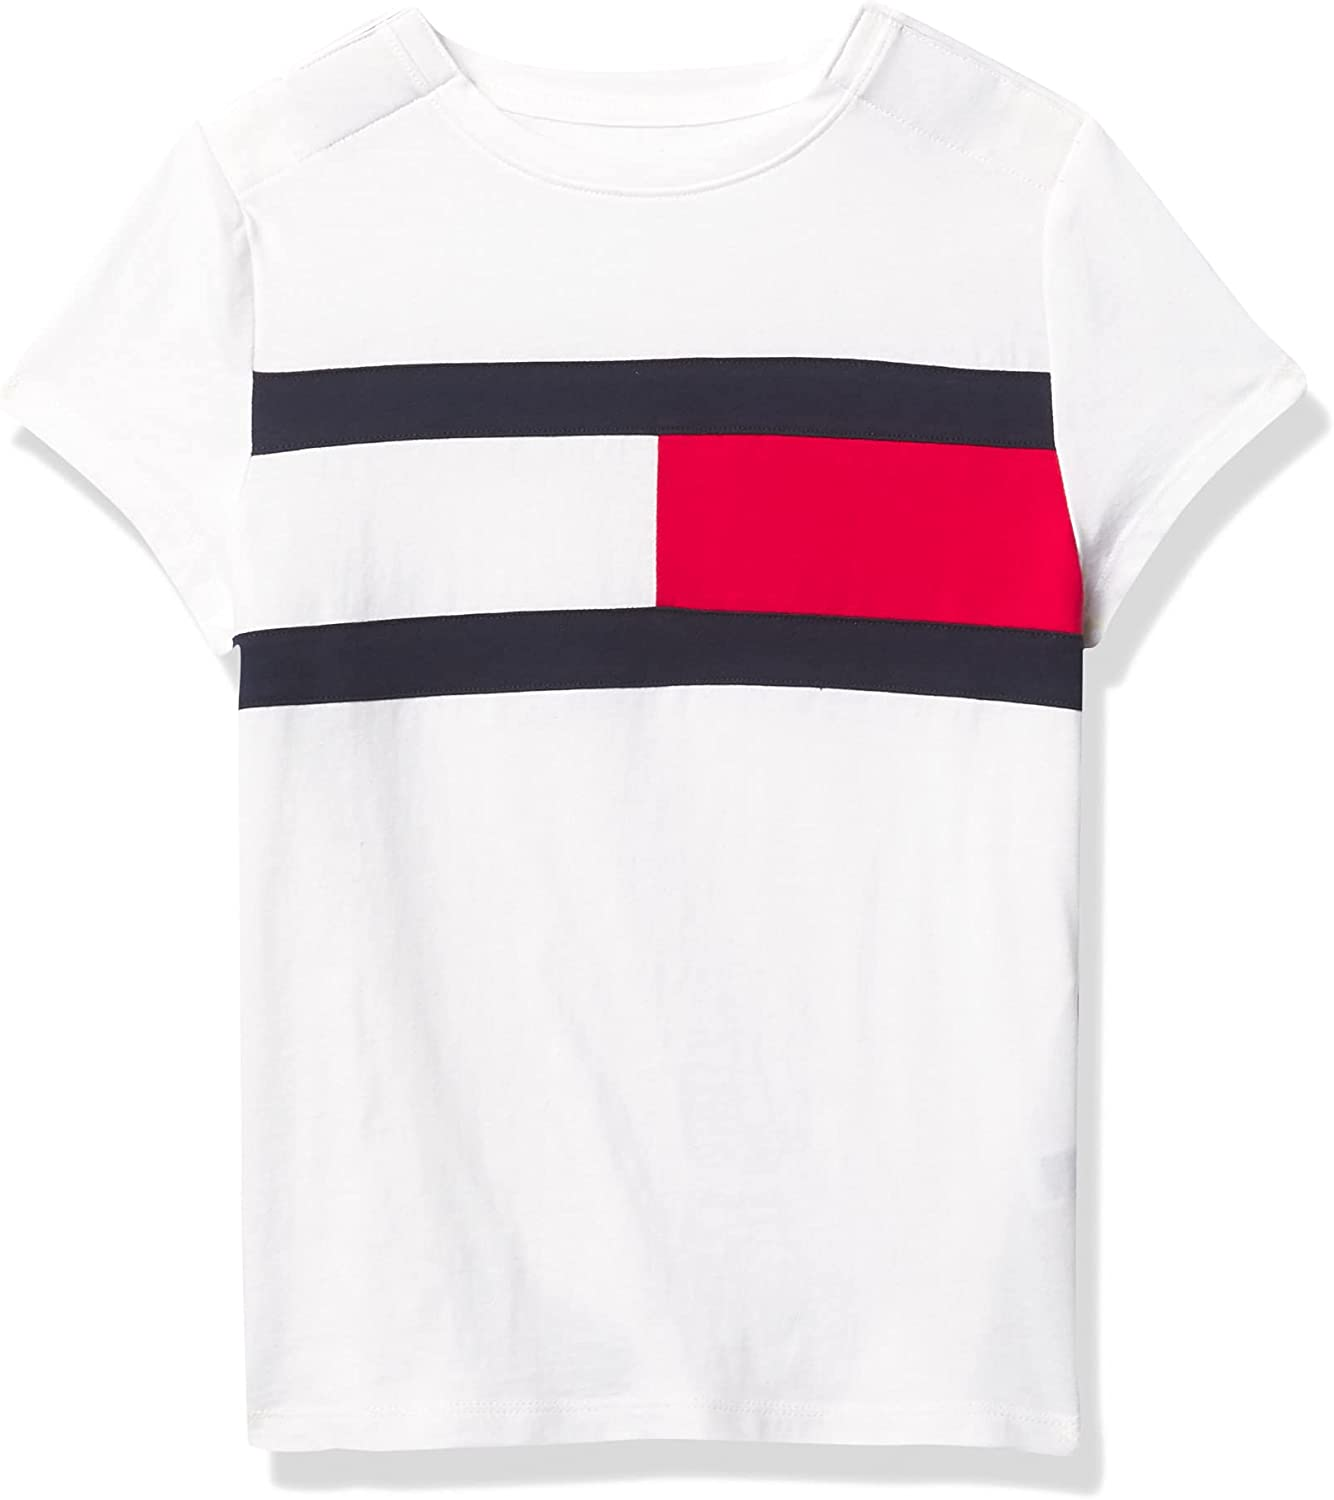 Tommy Hilfiger Adaptive Tommy Hilfiger Girls' Adaptive T-Shirt with Velcro Brand Closure at Shoulders